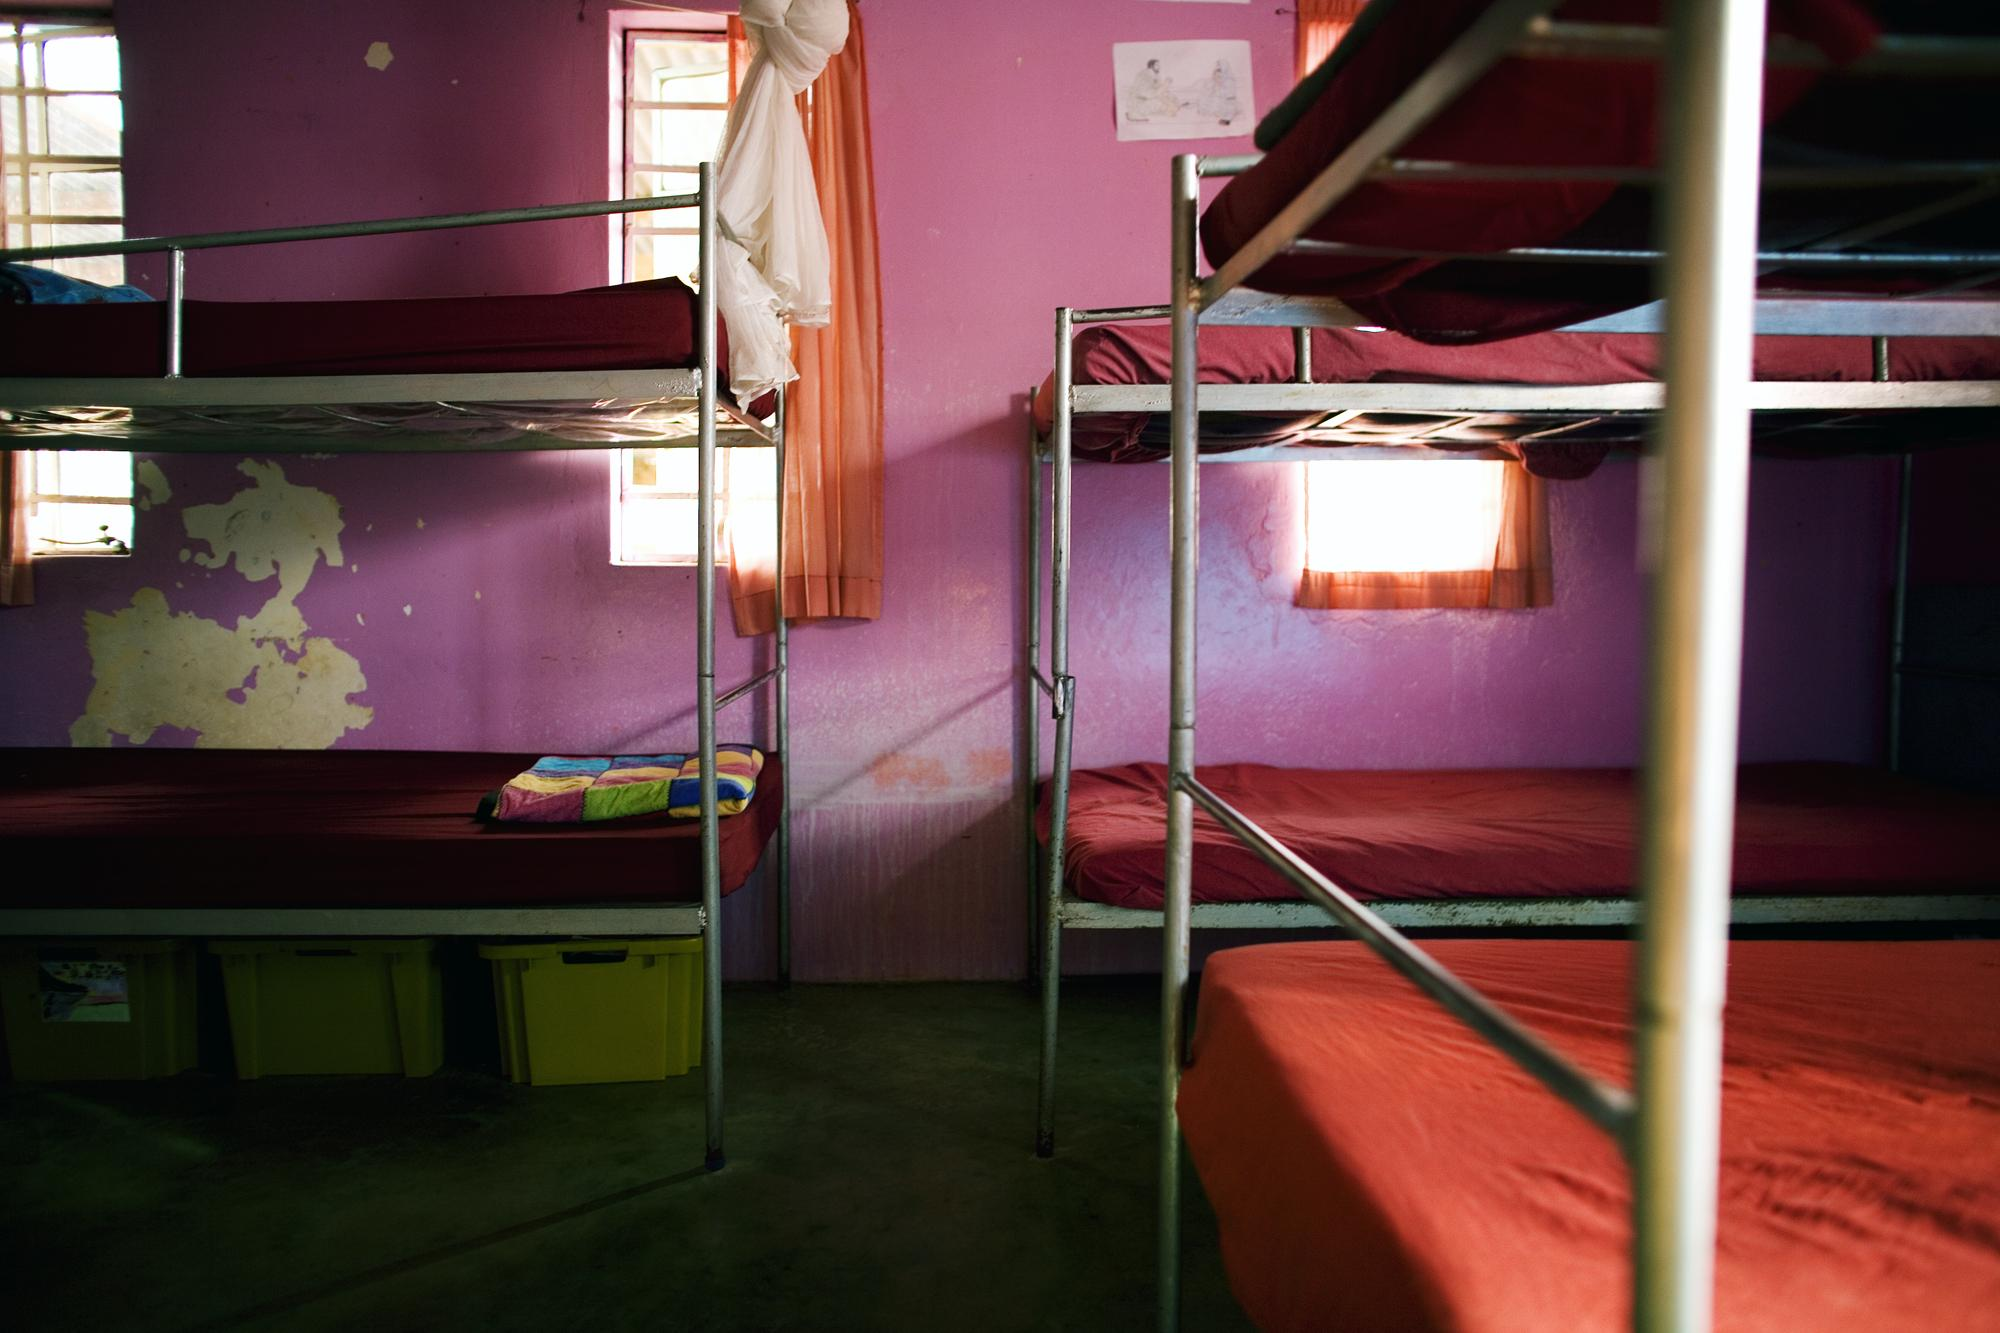 Maputo, Mozambique. Empty beds at the Orphanage run by Iris Ministries, church groups. There are 358 children: 24 children from 0-3 years in Baby house, 25 children are HIV positive, and 35 people are working full time at orphanage